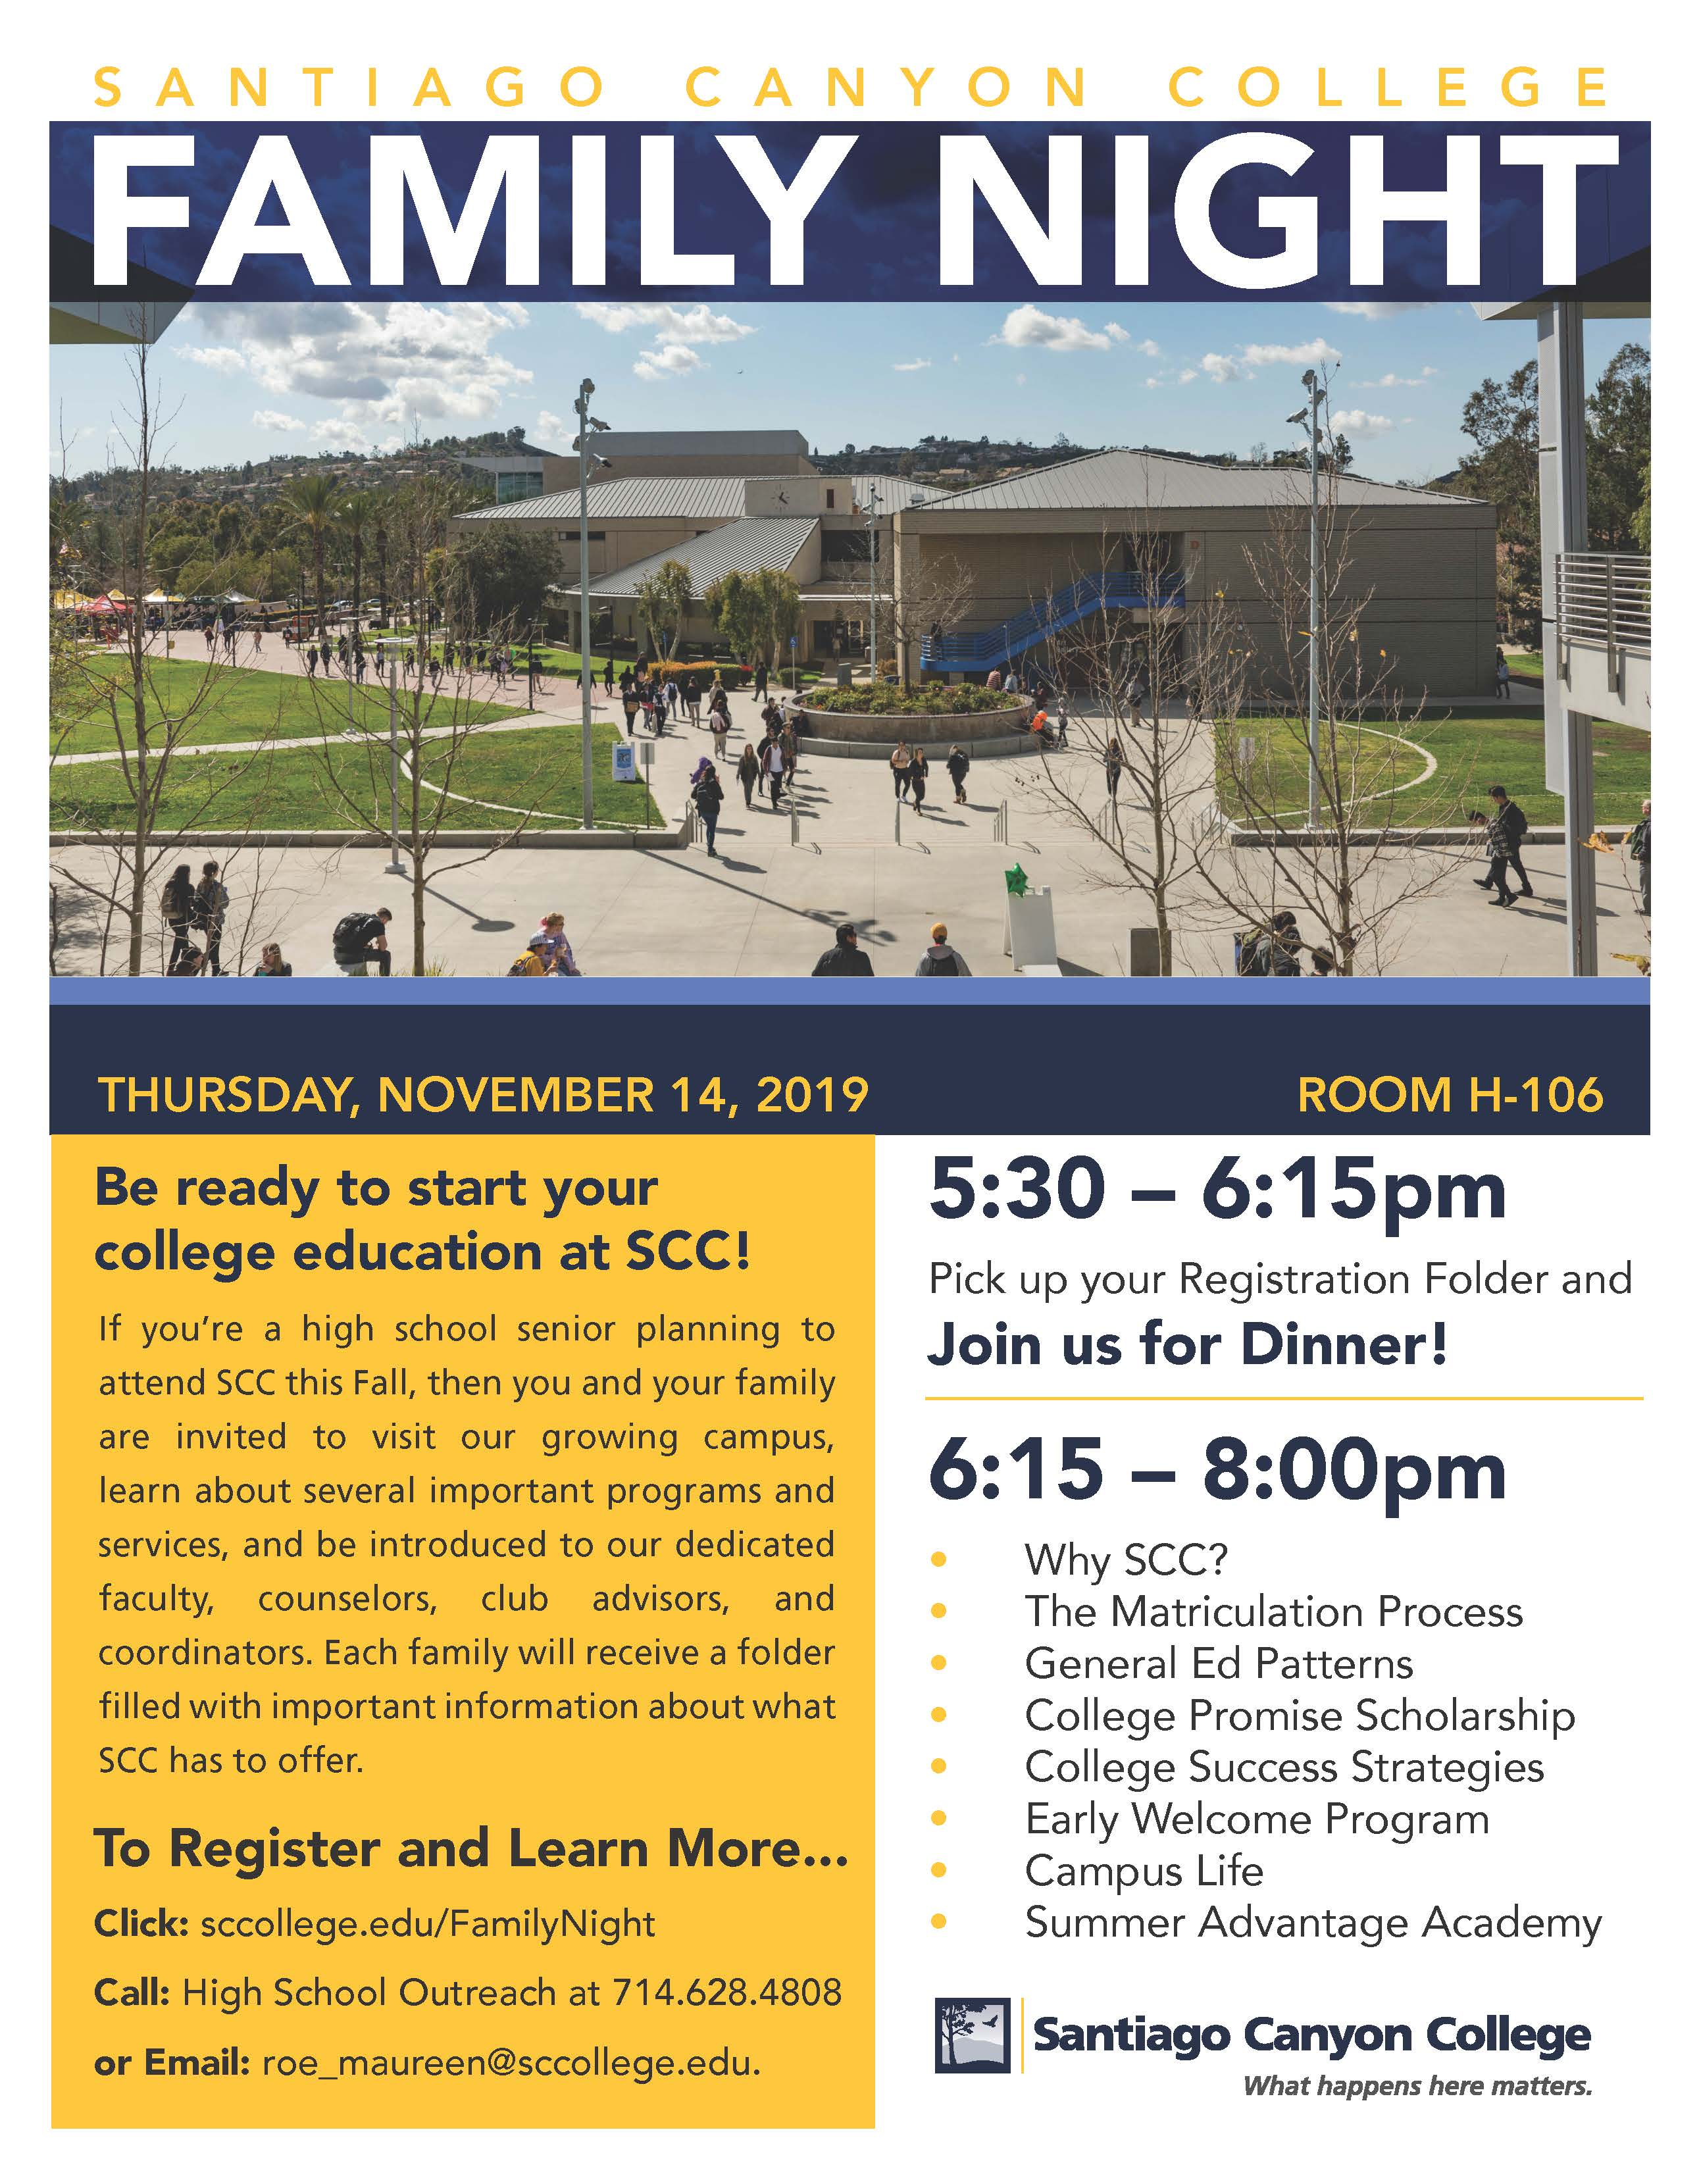 Promotional flyer for Family night. Text from flyer also included below.